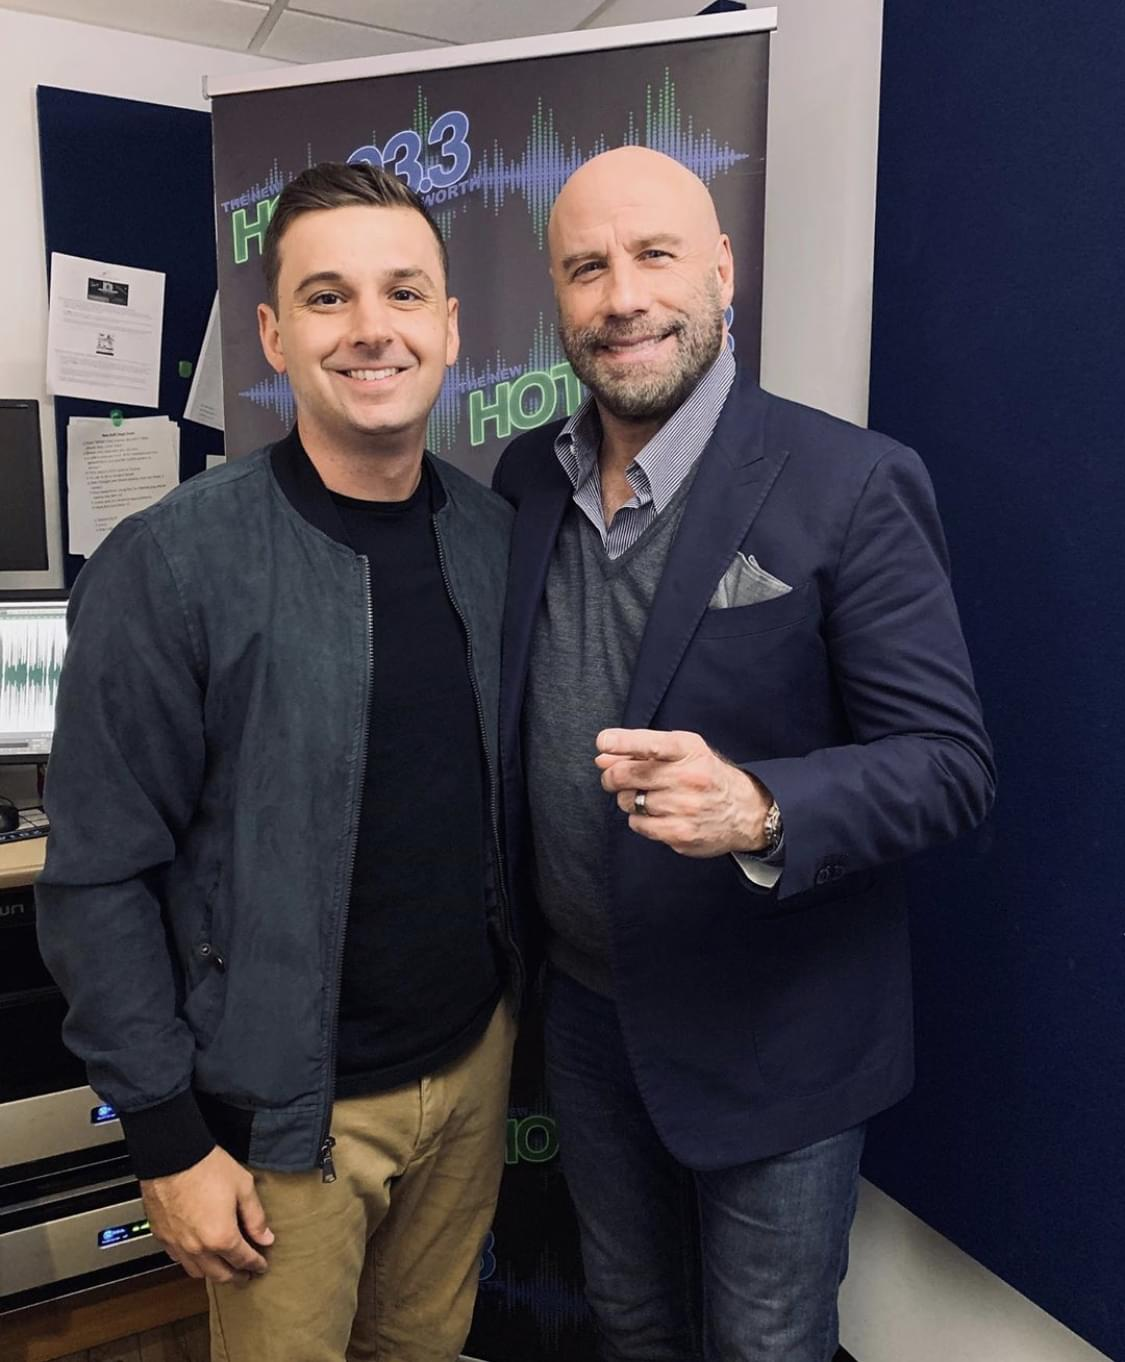 John Travolta Stops By the Studio 'The Fanatic'